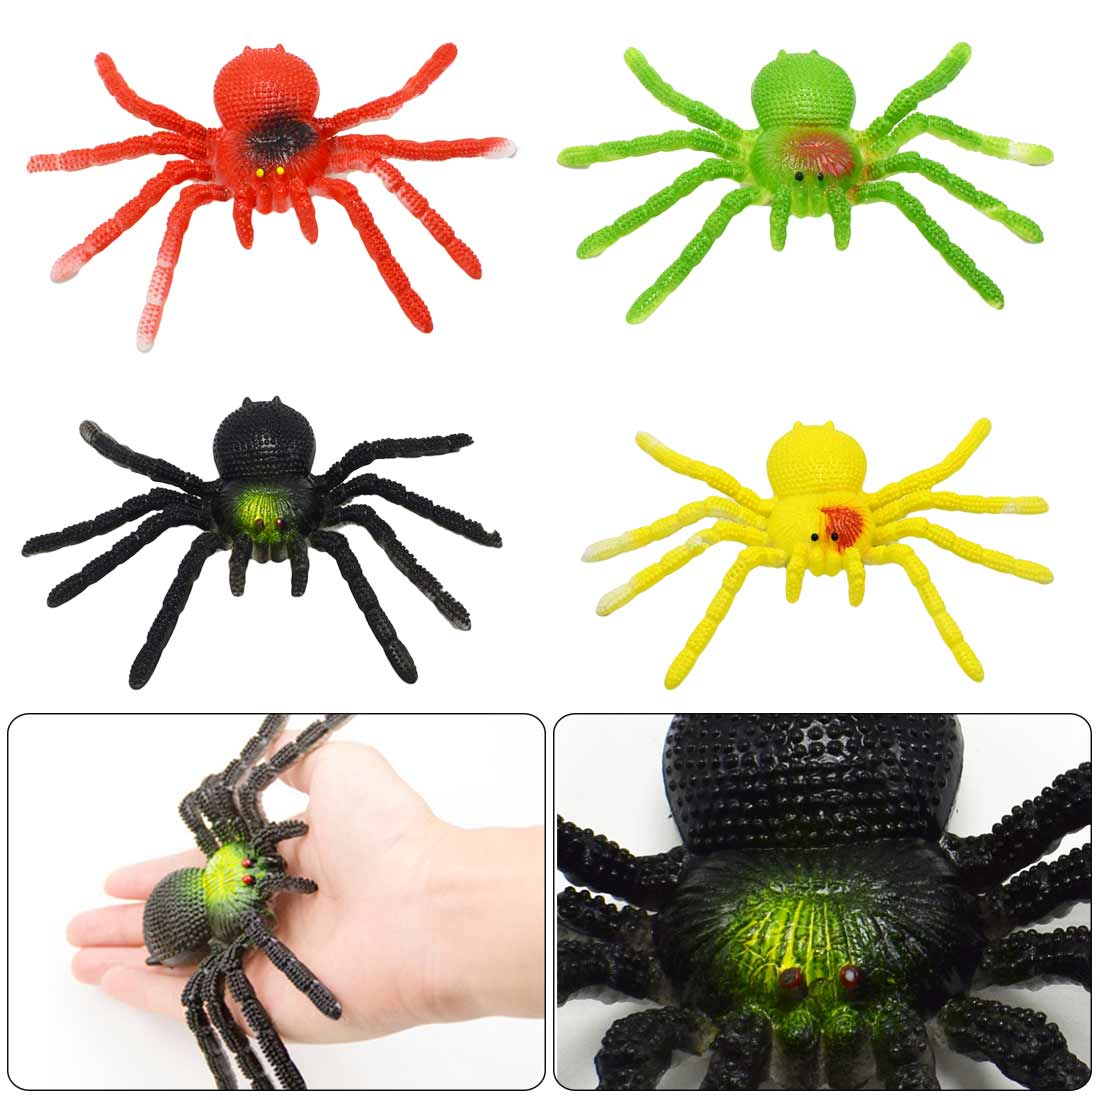 Tricky Spoof Toys Simulation Spider  Soft Rubber Animals Gif